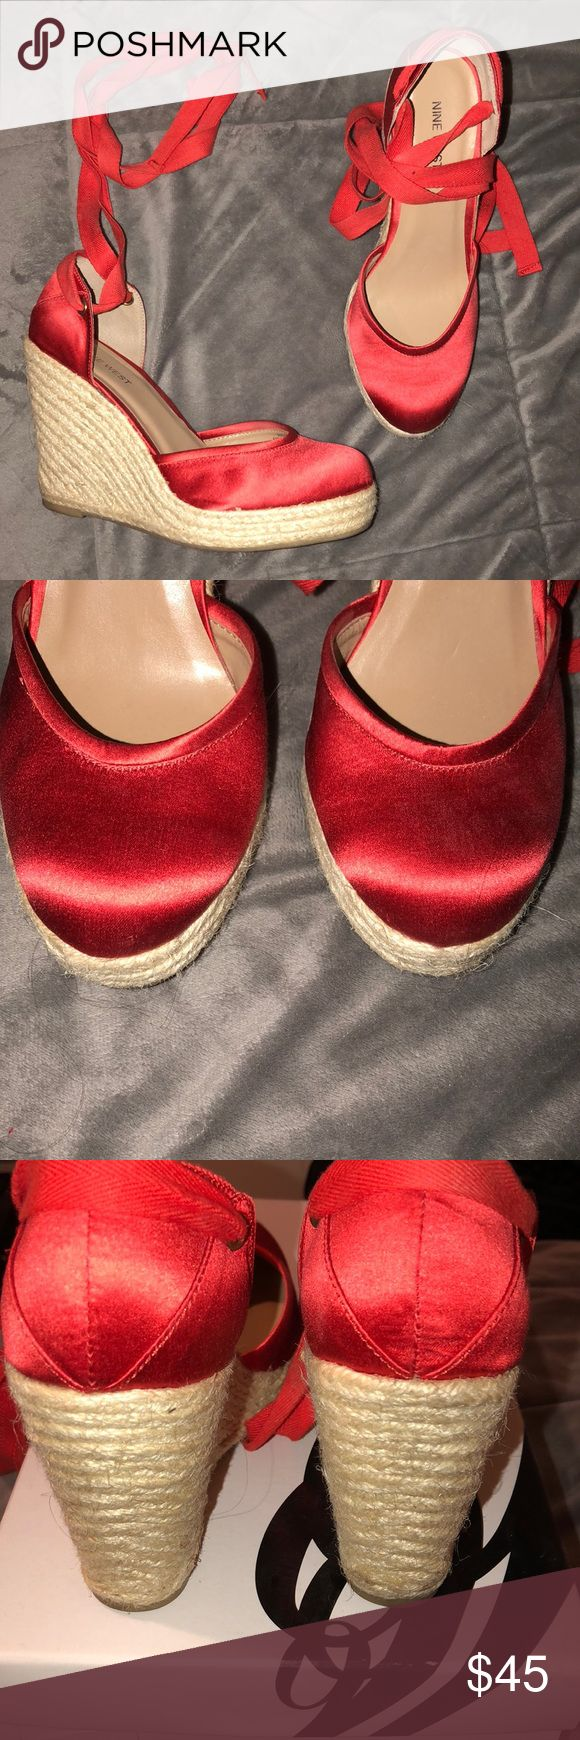 "Nine West Espadrille Wedges in Red Nine West espadrille wedges in red! Only worn a couple of times. Ties at the ankle. So cute with a dress, skirt, or ankle pants! Heel height is about 4.5"" with a 1"" platform. Comes with the original box. Nine West Shoes Wedges"